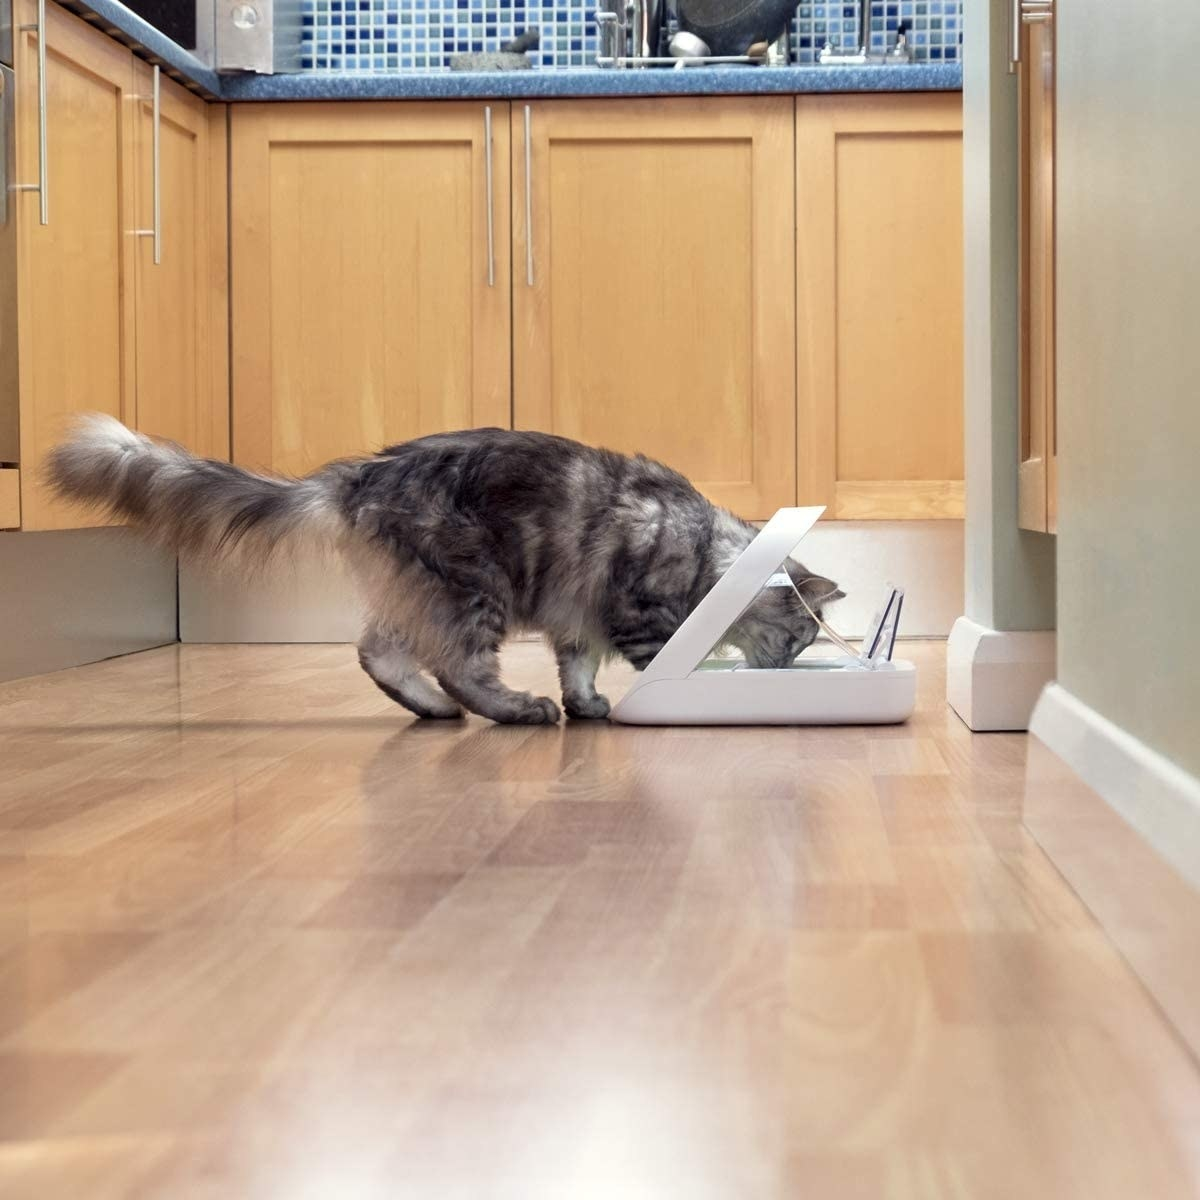 gray cat eating out of a white automatic feeder in the kitchen